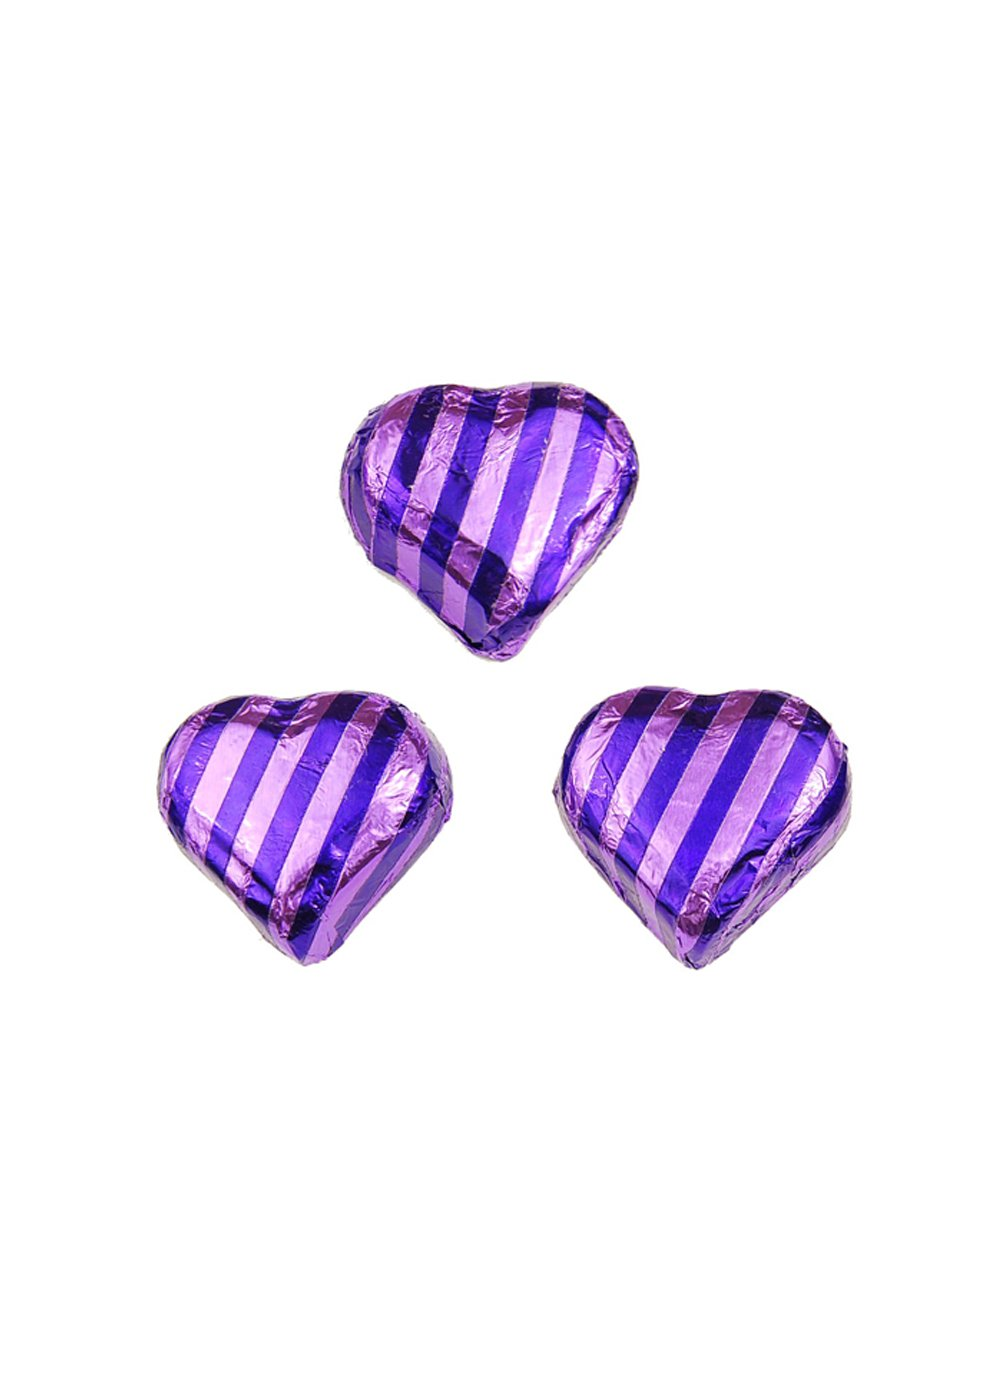 MAD - ULTRA FILLED HEARTS .5 OZ PEANUT BUTTER 40 CT